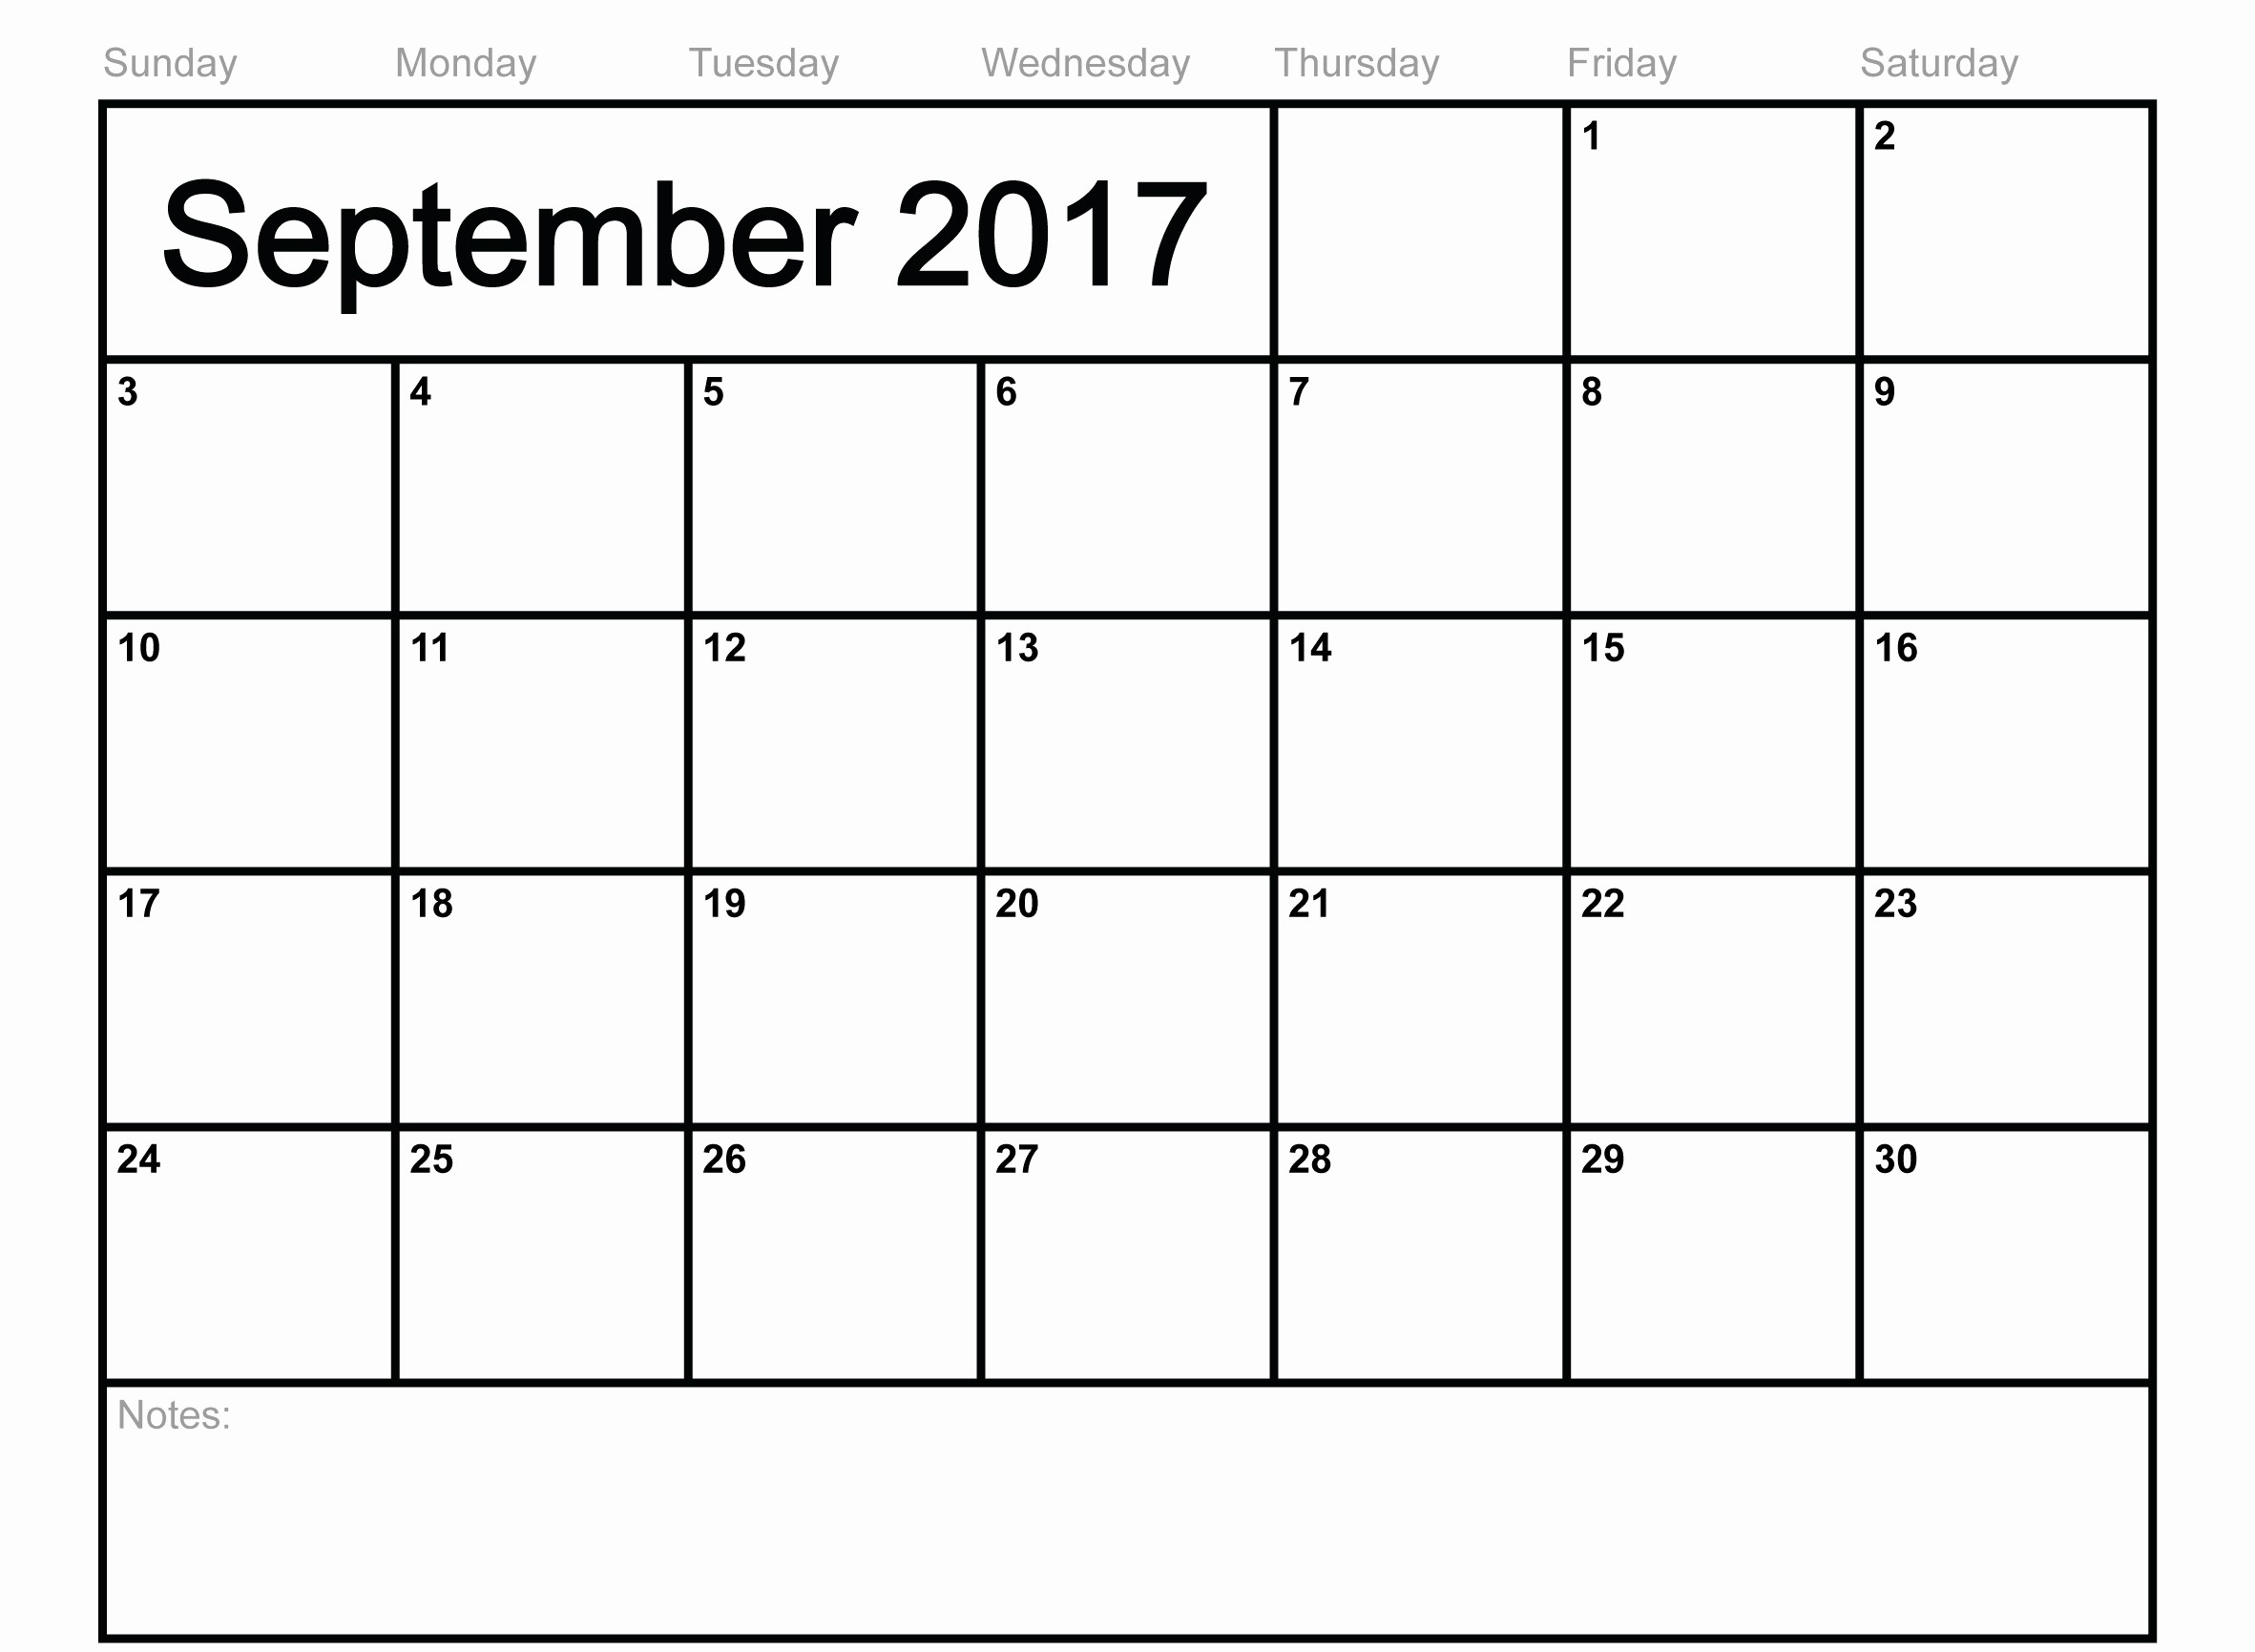 September 2017 Printable Calendar Word Beautiful Calendar September 2017 Print Out Calendar and